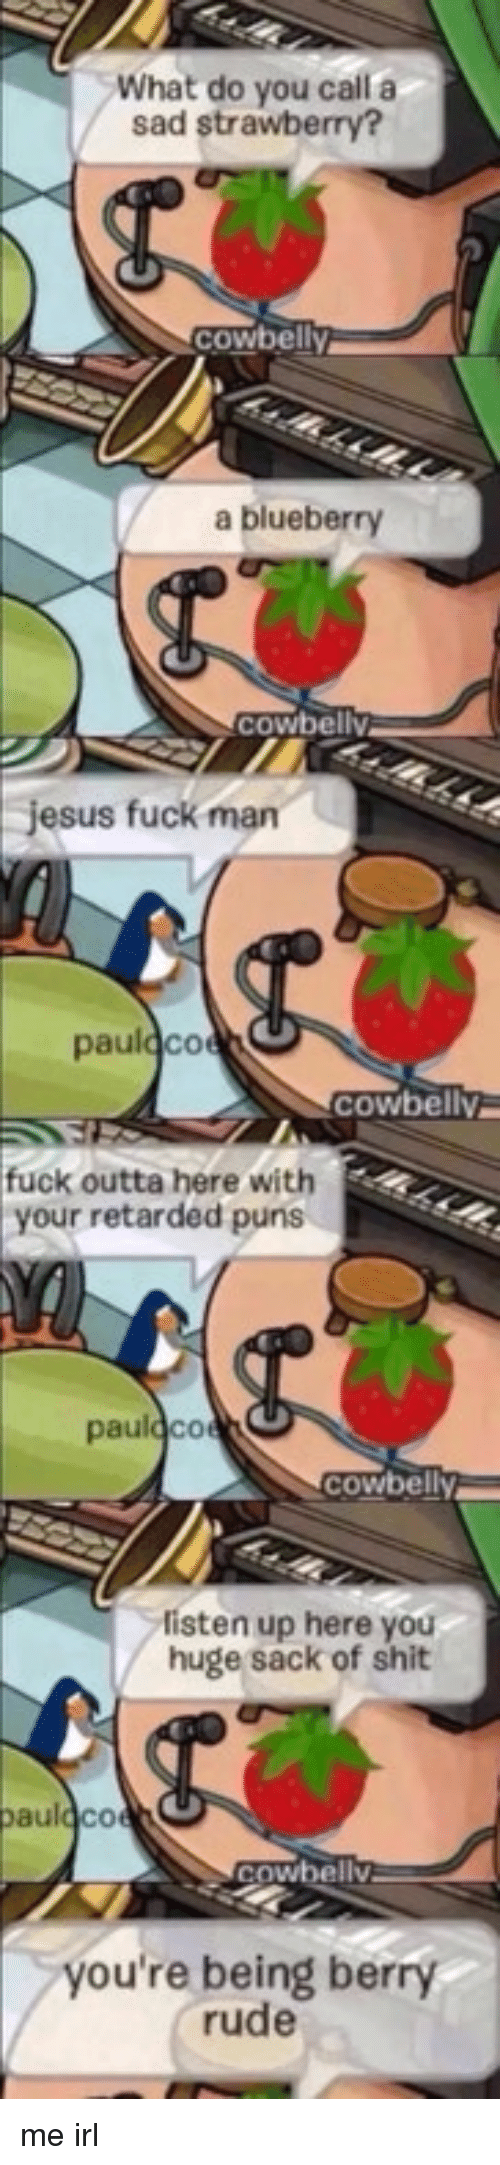 Fuck Man: What do you call a  sad strawberry?  cowbelly  a blueberry  cowbelly  jesus fuck man  fuck outta here with  your retarded puns  pau  cowbe  Cowbely  listen up here you  huge sack of shit  au  0  wbellv  you're being berry  rude me irl